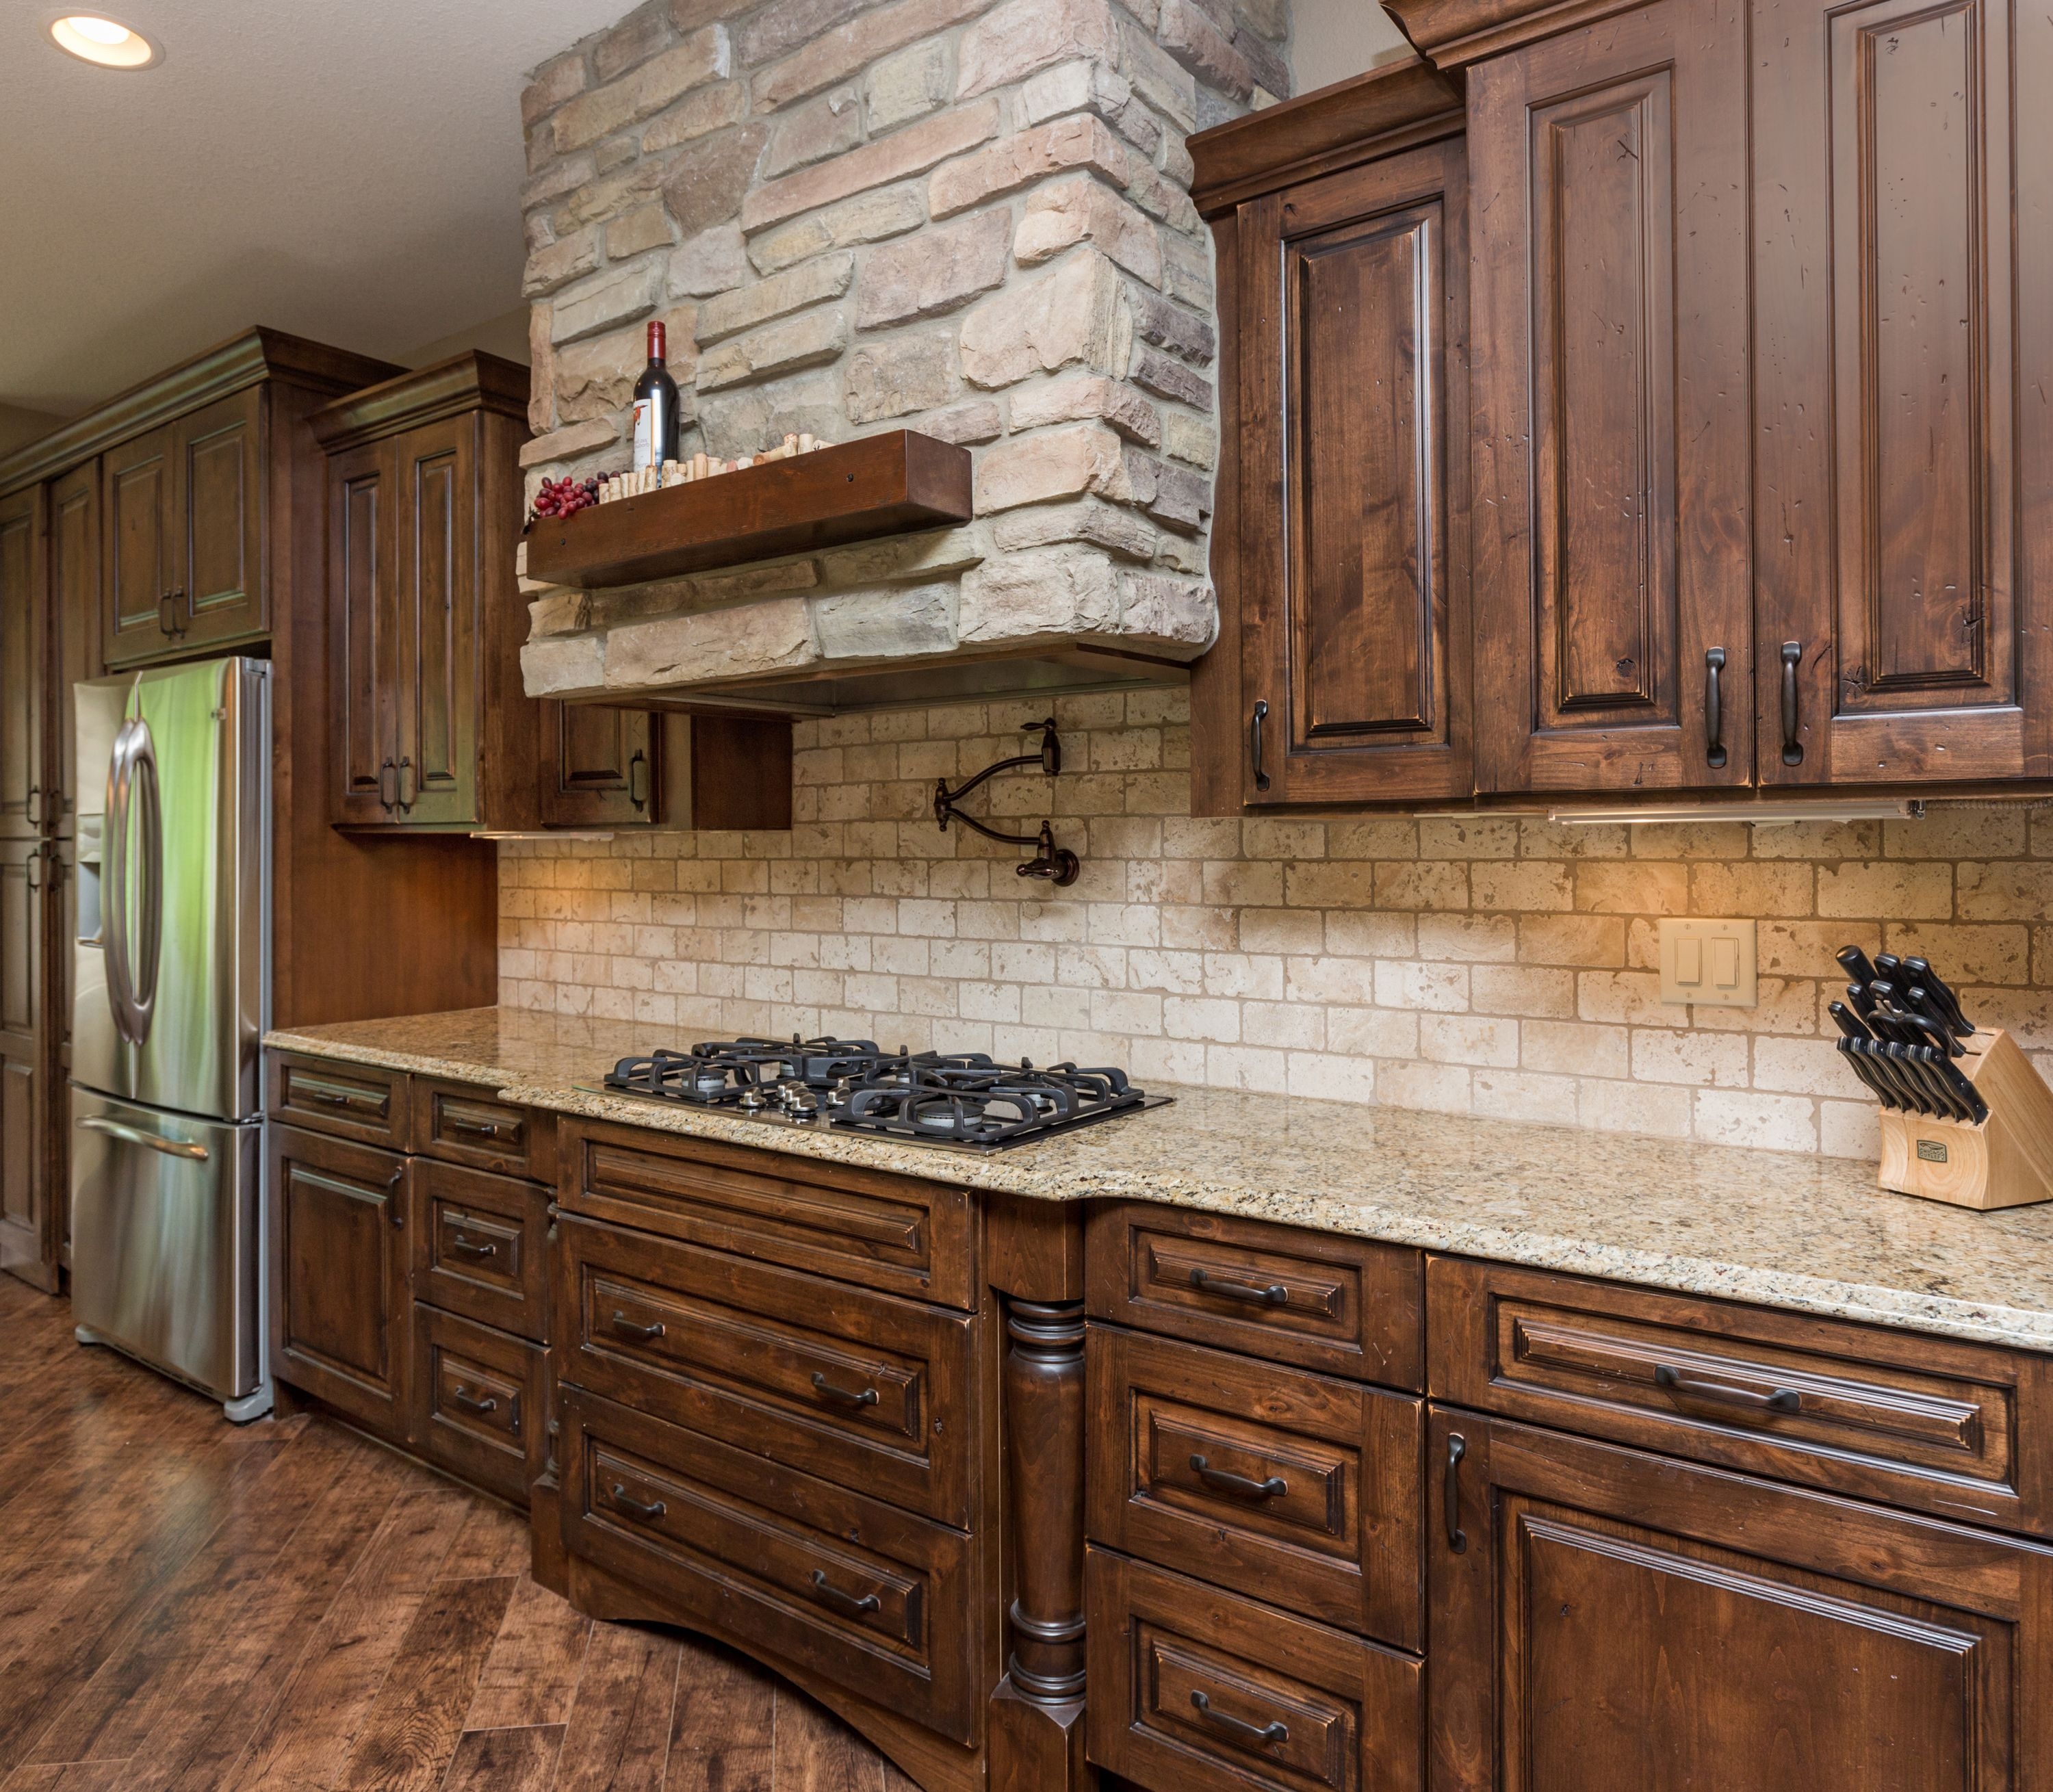 Wood Tile Kitchen Backsplash: Stone Hood Vent With Wood Ledge, Travertine Backsplash